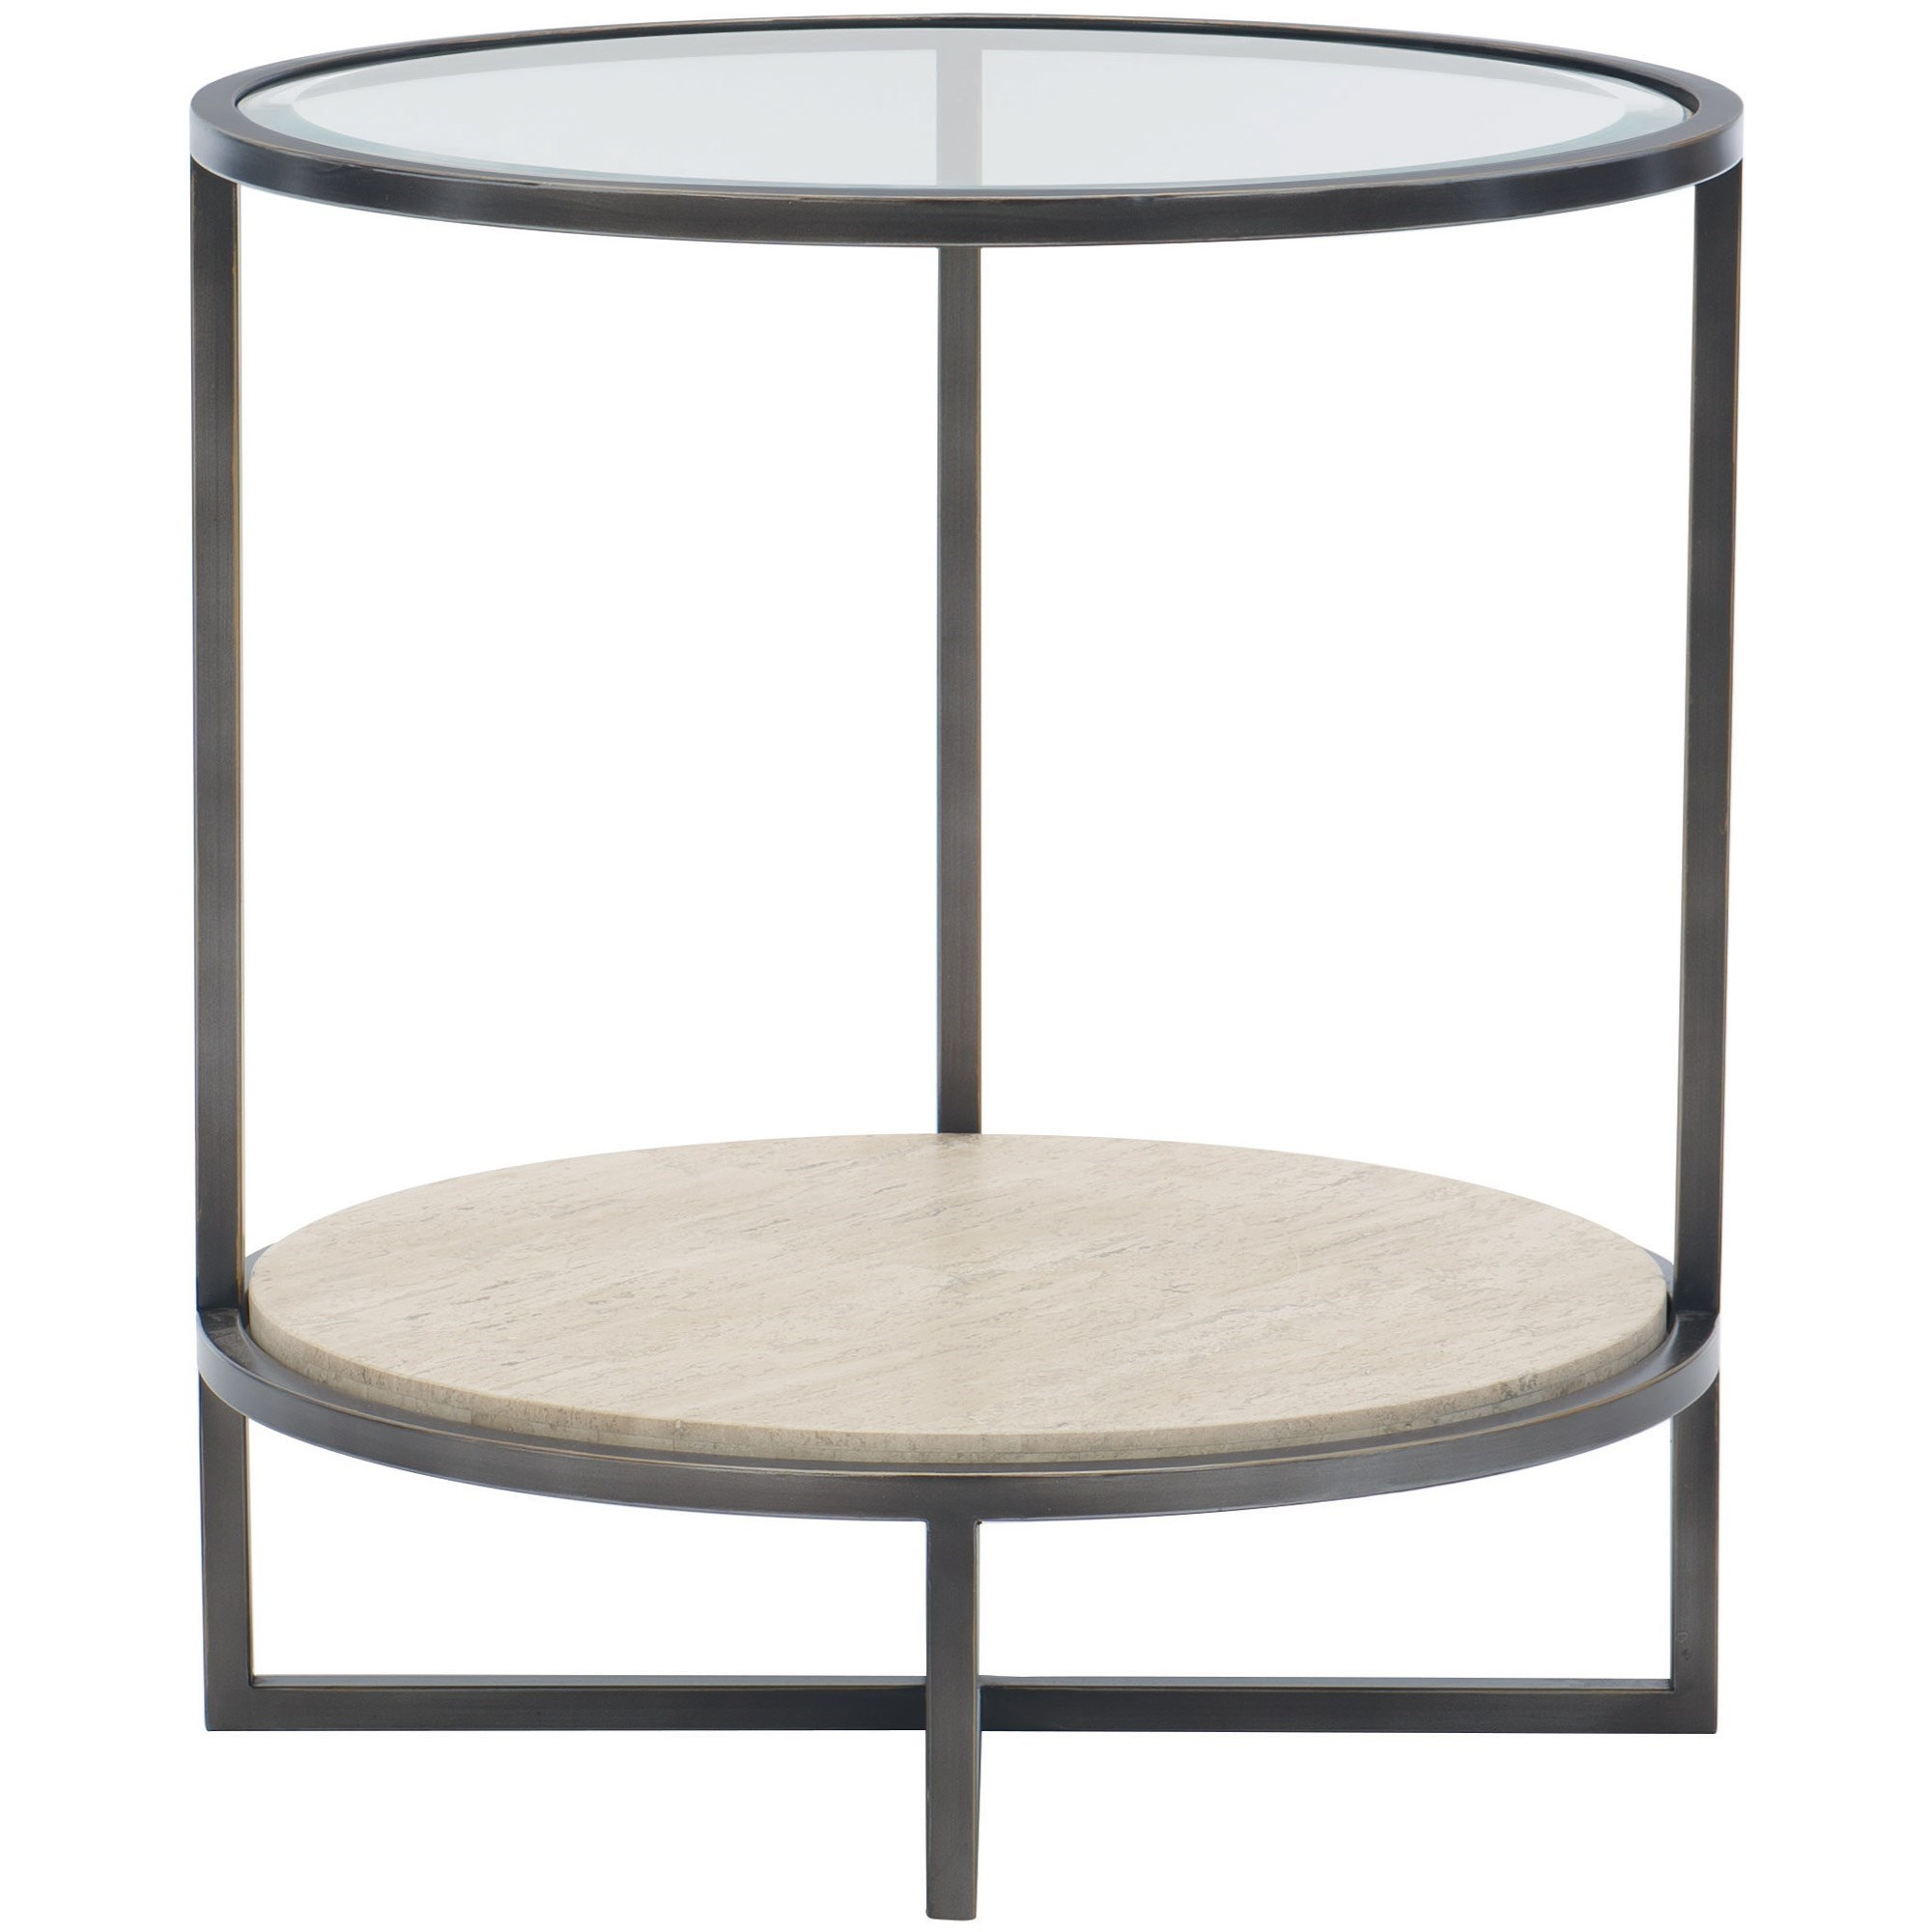 Harlow Metal Round Chairside Table by Bernhardt at Baer's Furniture